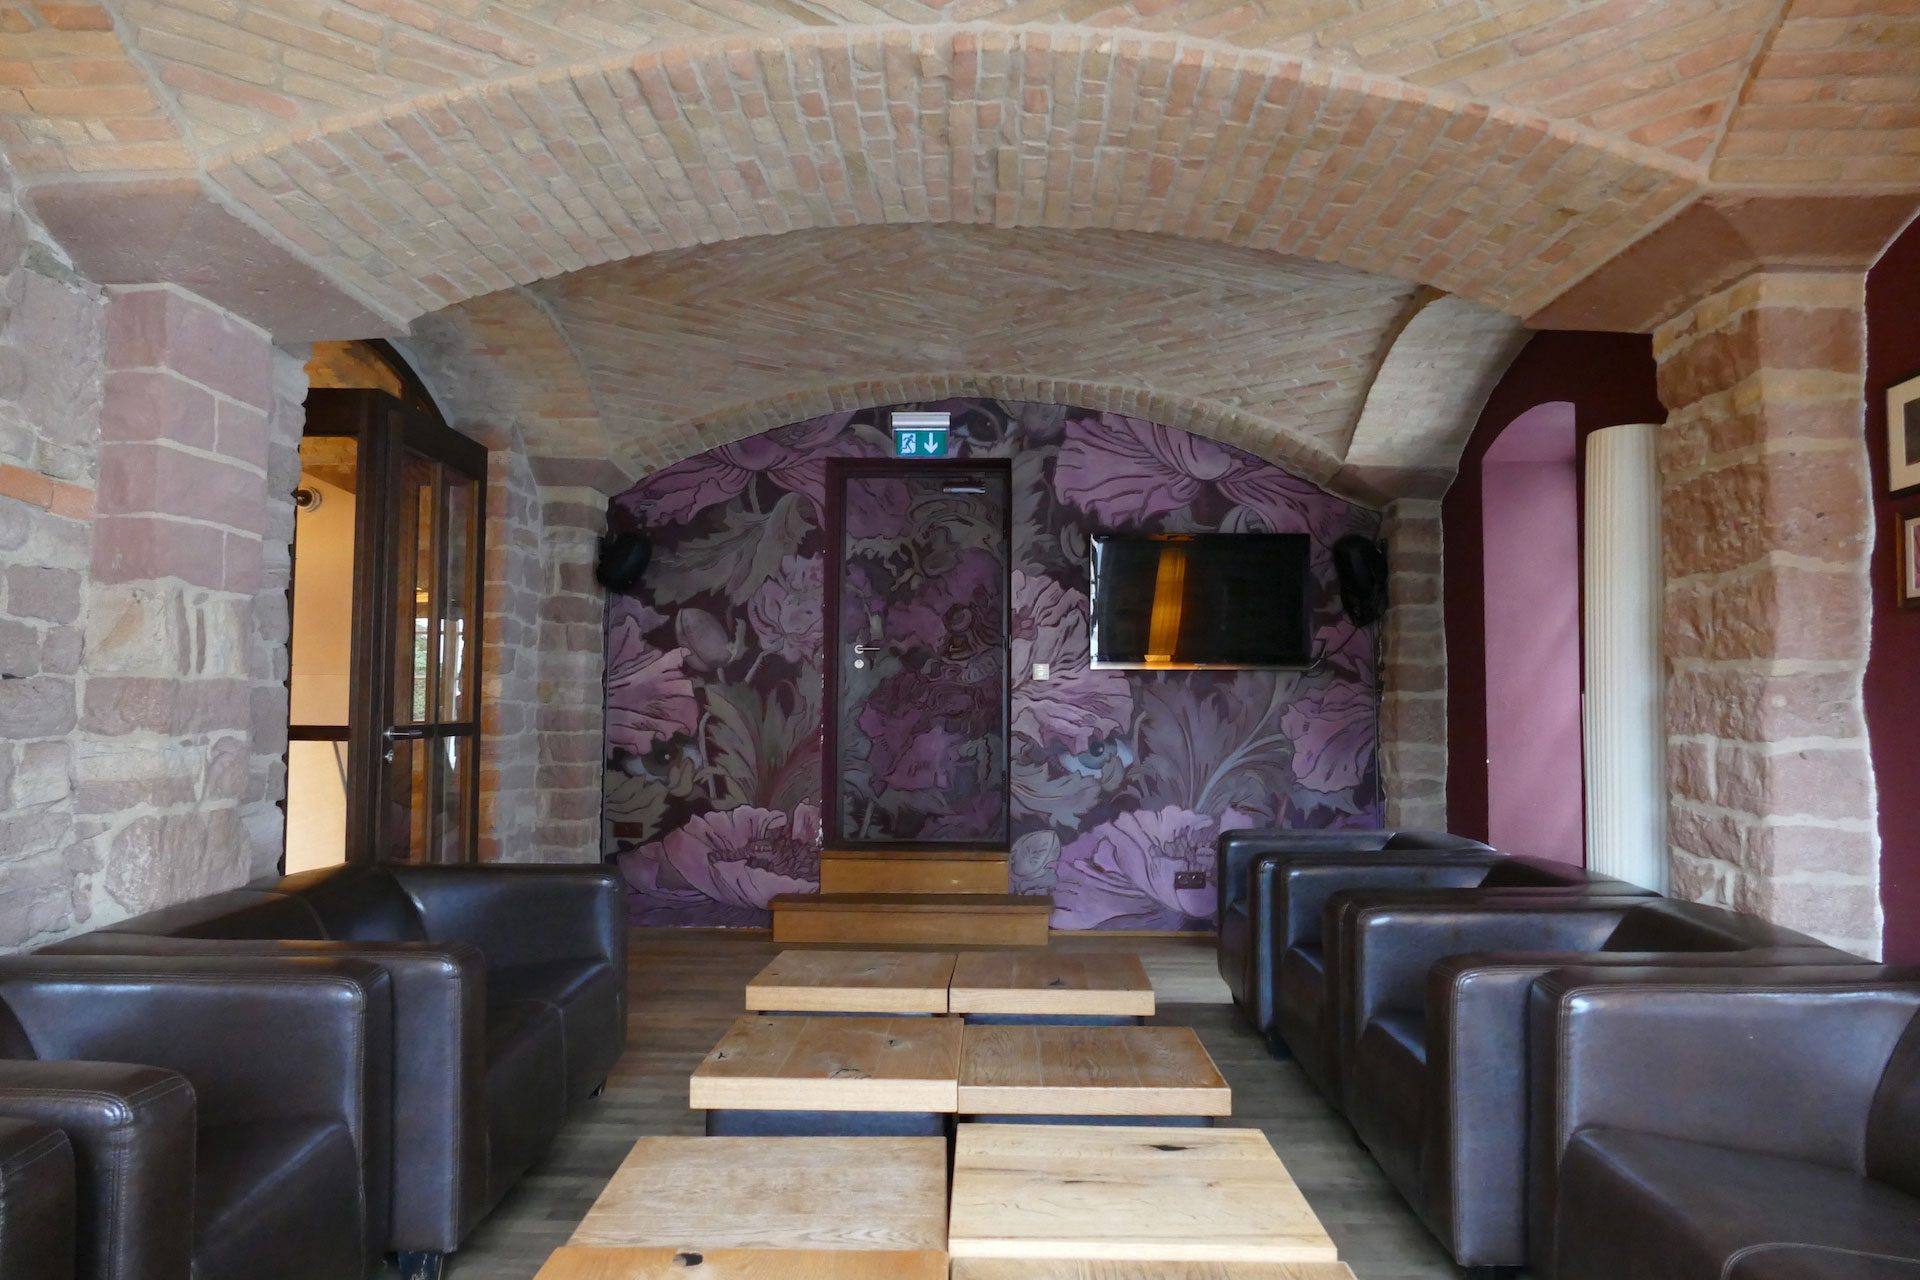 Die Lounge in der cafebar maximilian in Speyer